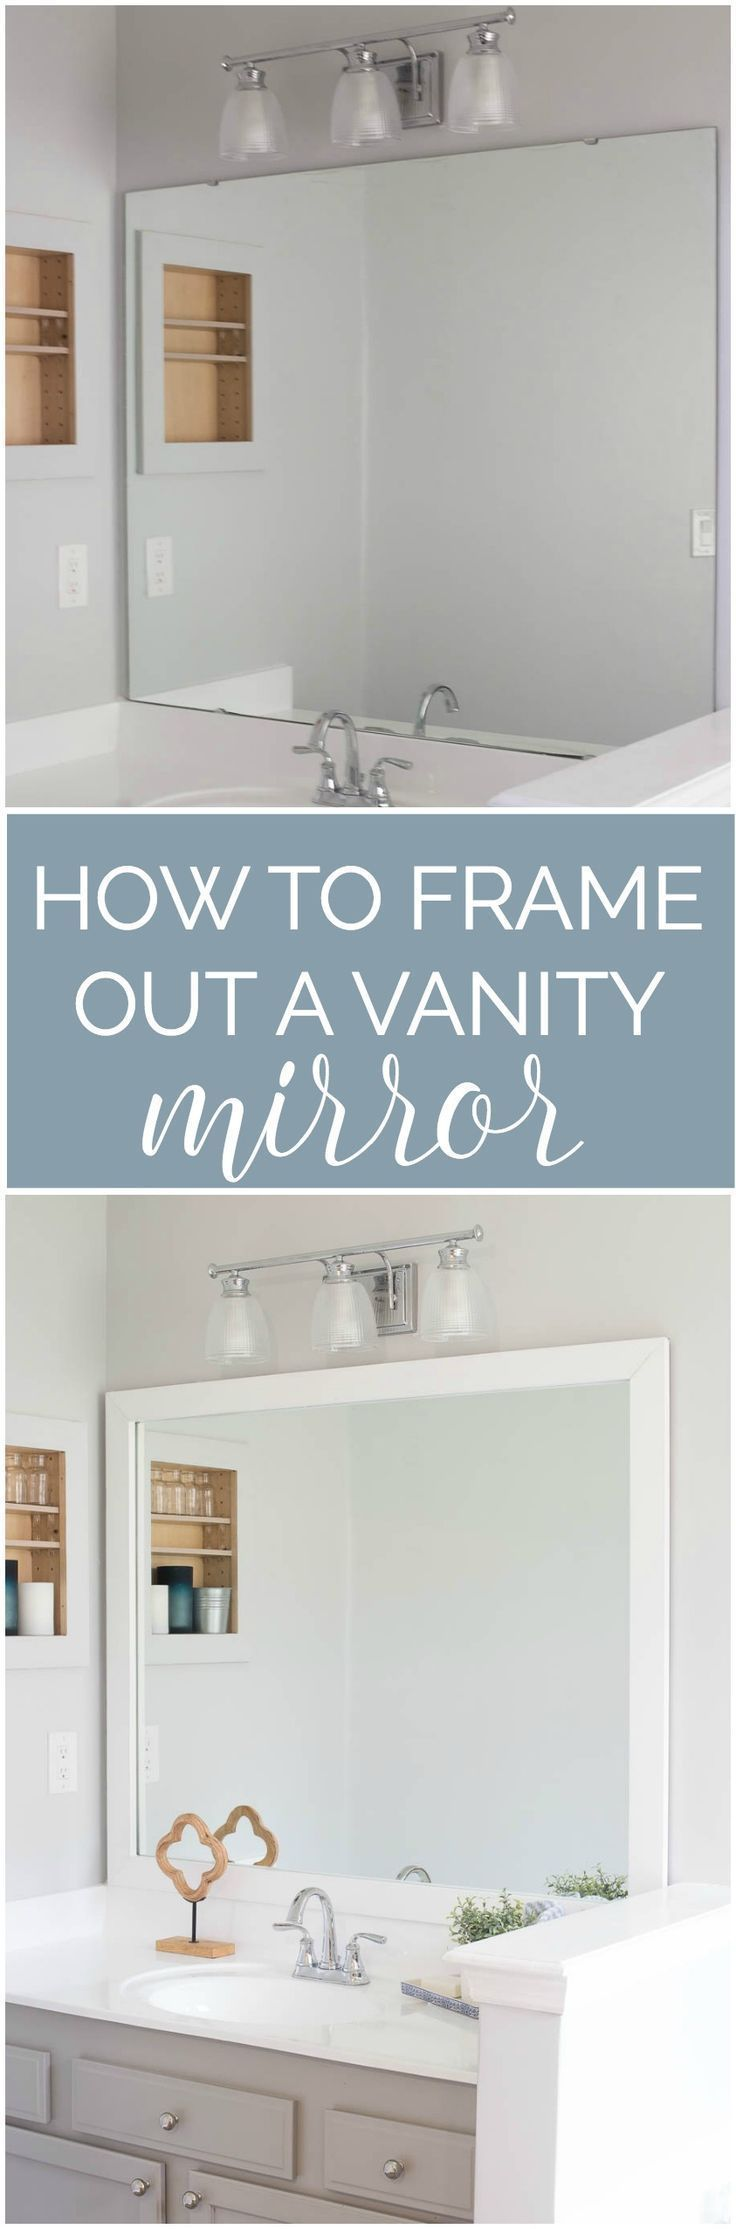 83 best HOME: New Apartment images on Pinterest | Home ideas ...